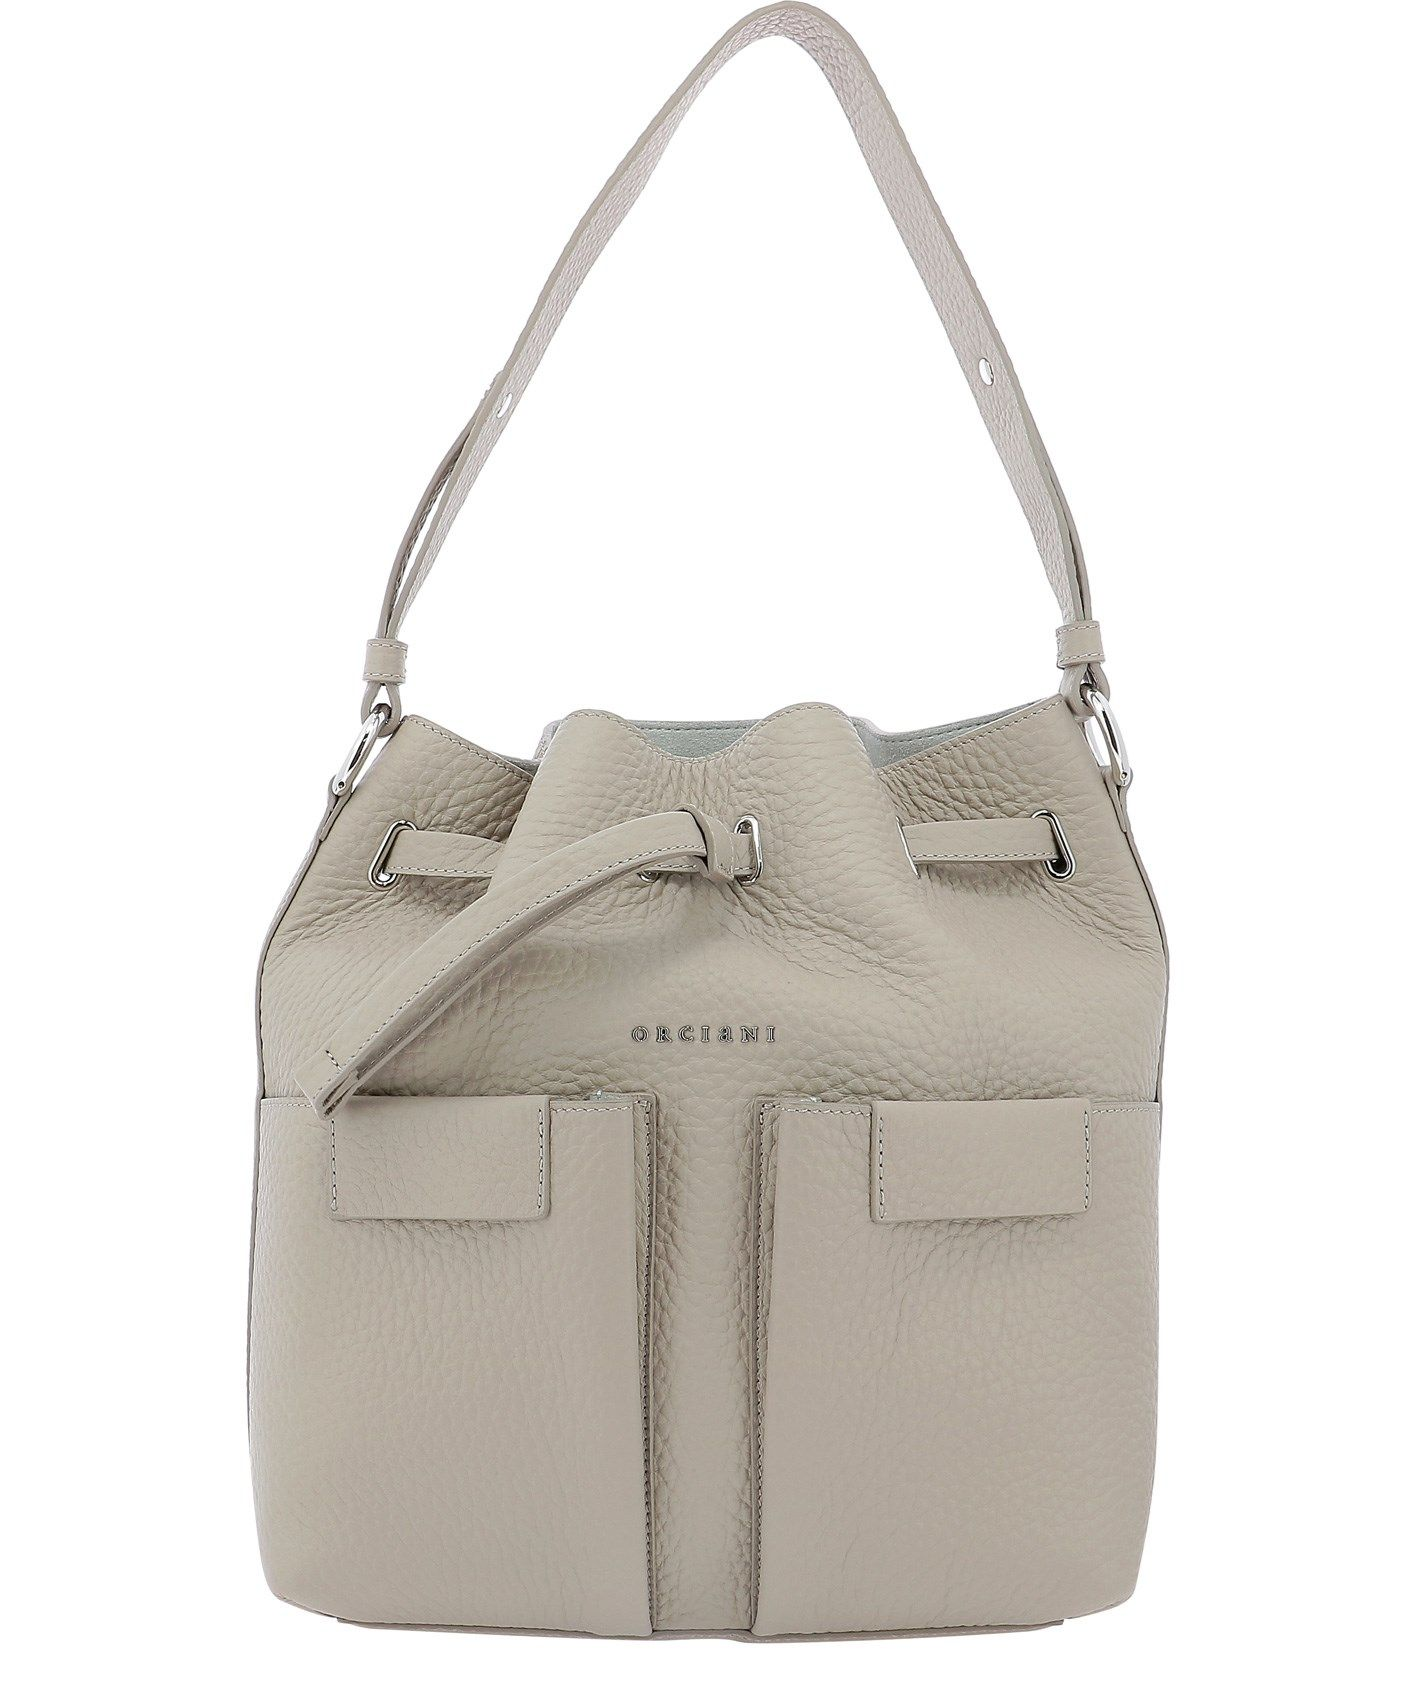 Orciani Leathers ORCIANI WOMEN'S B02092SOFTCONCHIGLIA BEIGE OTHER MATERIALS SHOULDER BAG